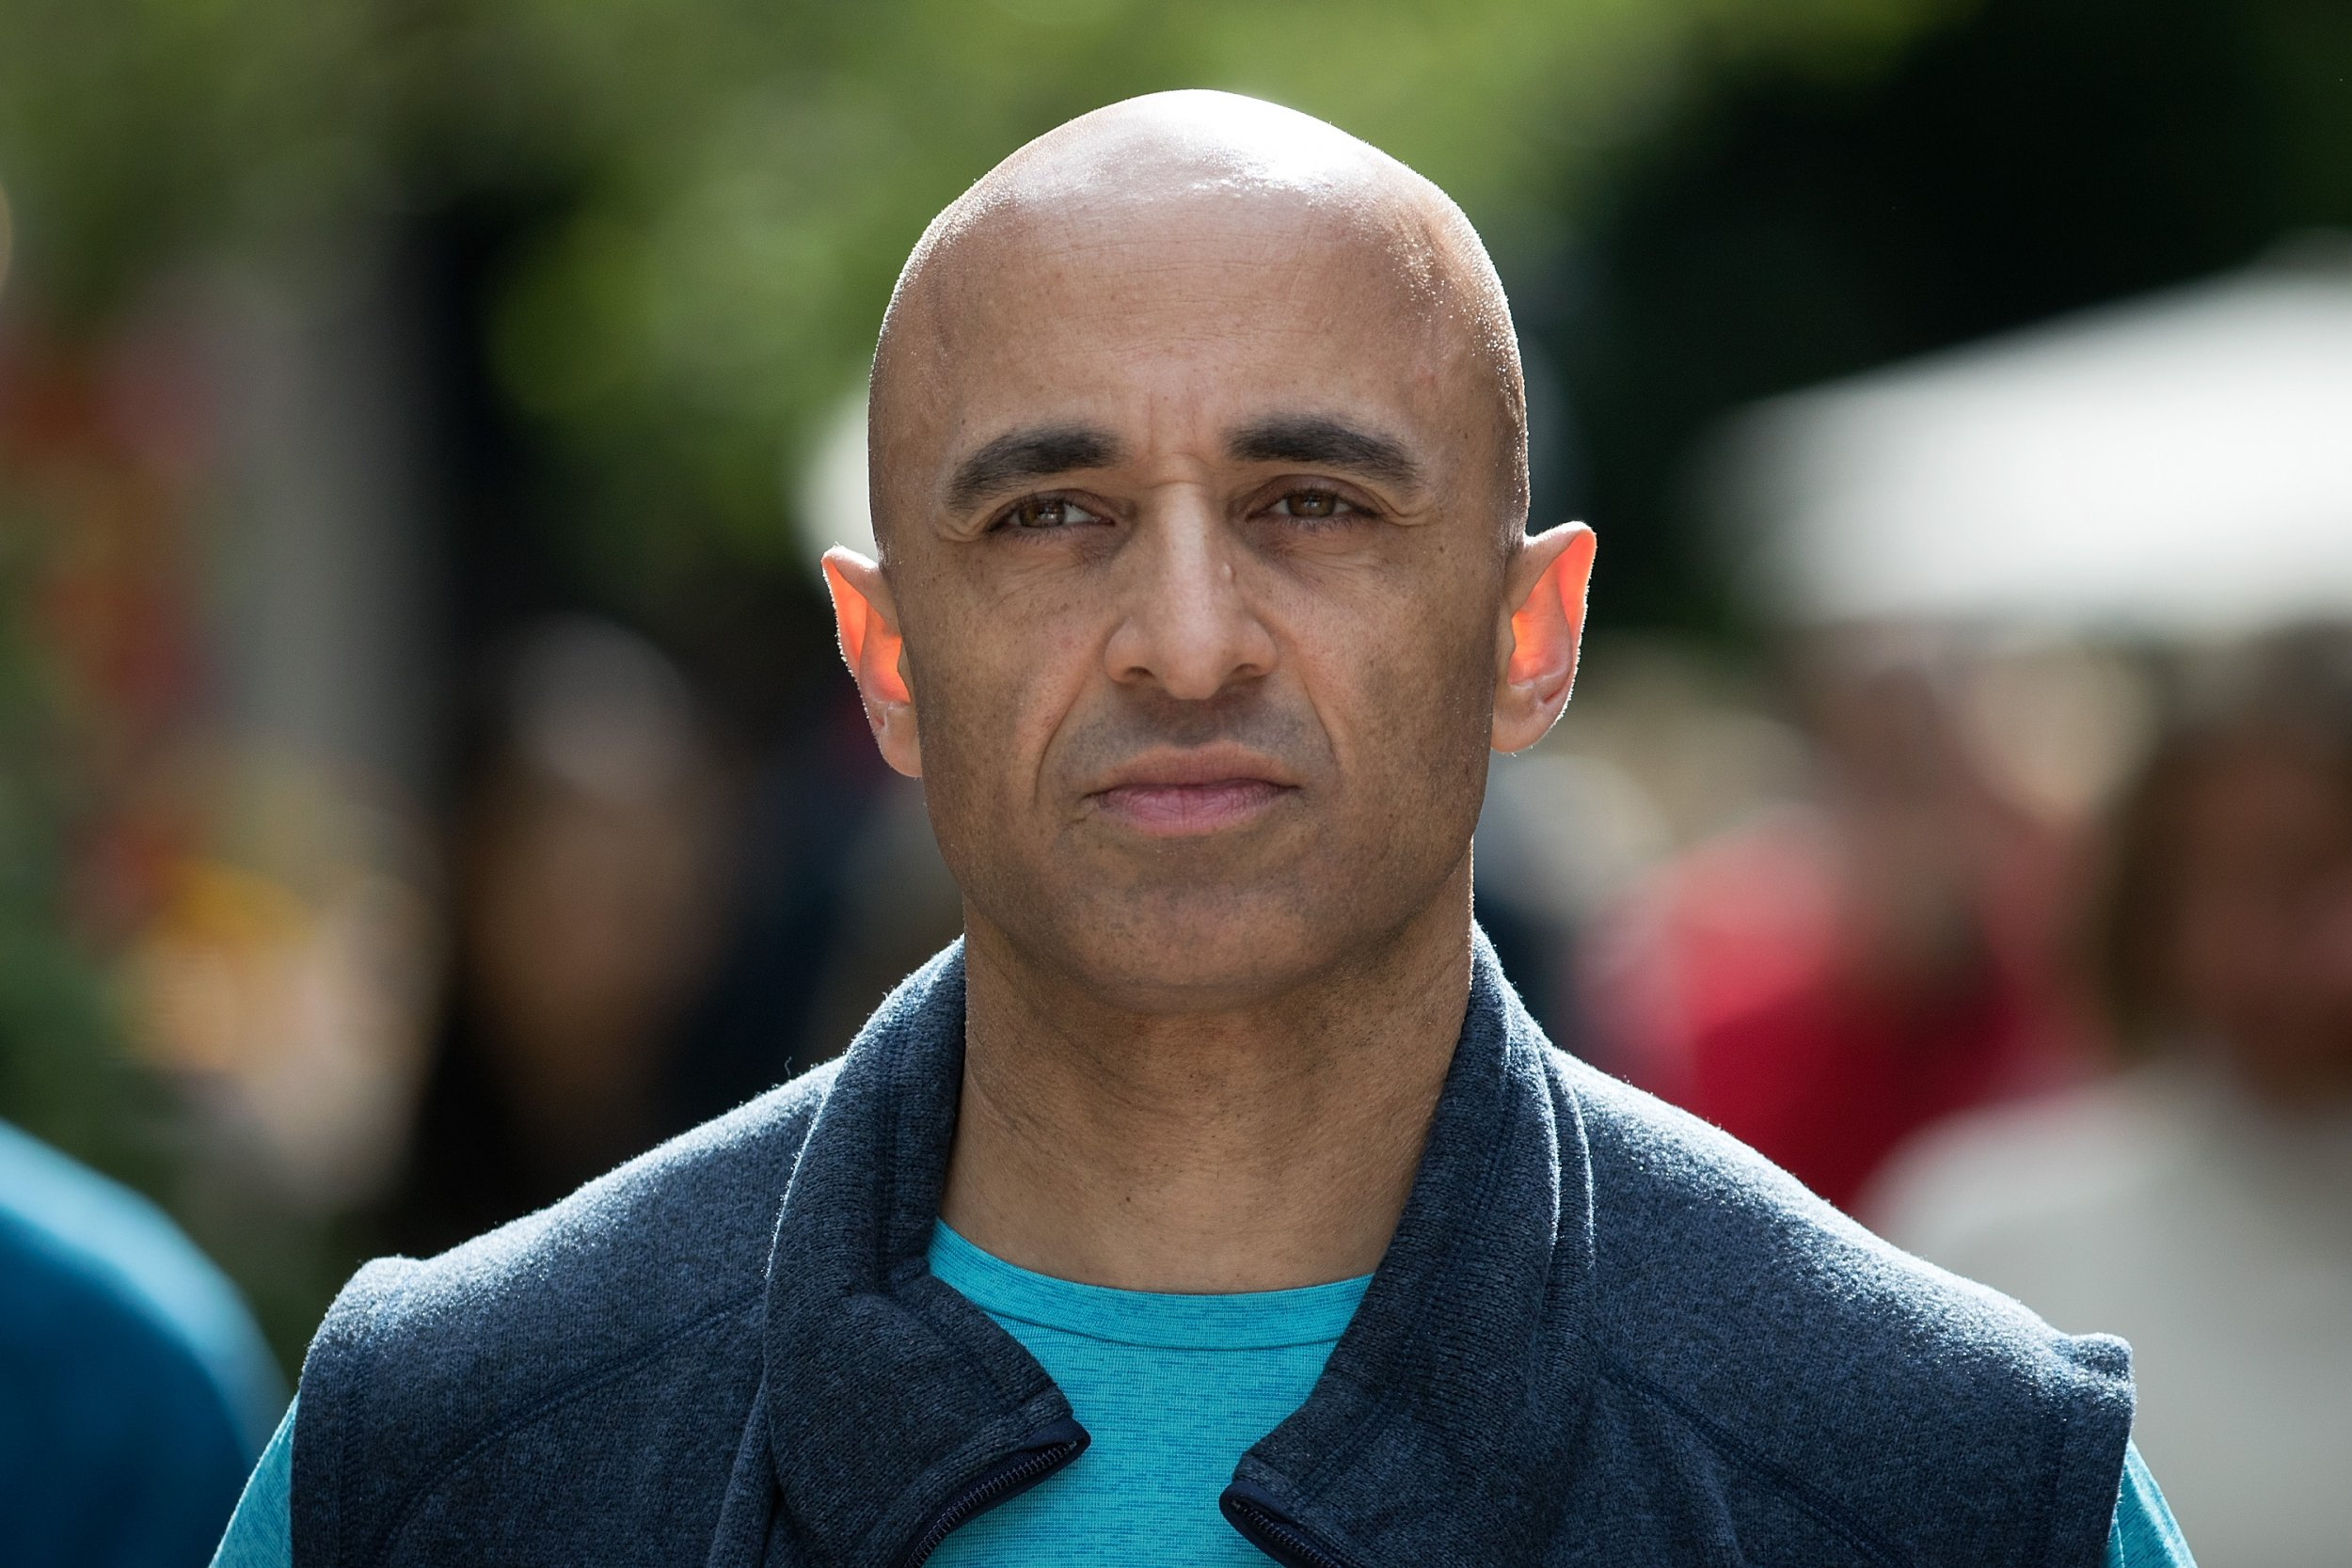 Yousef Al Otaiba, United Arab Emirates Ambassador to the United States